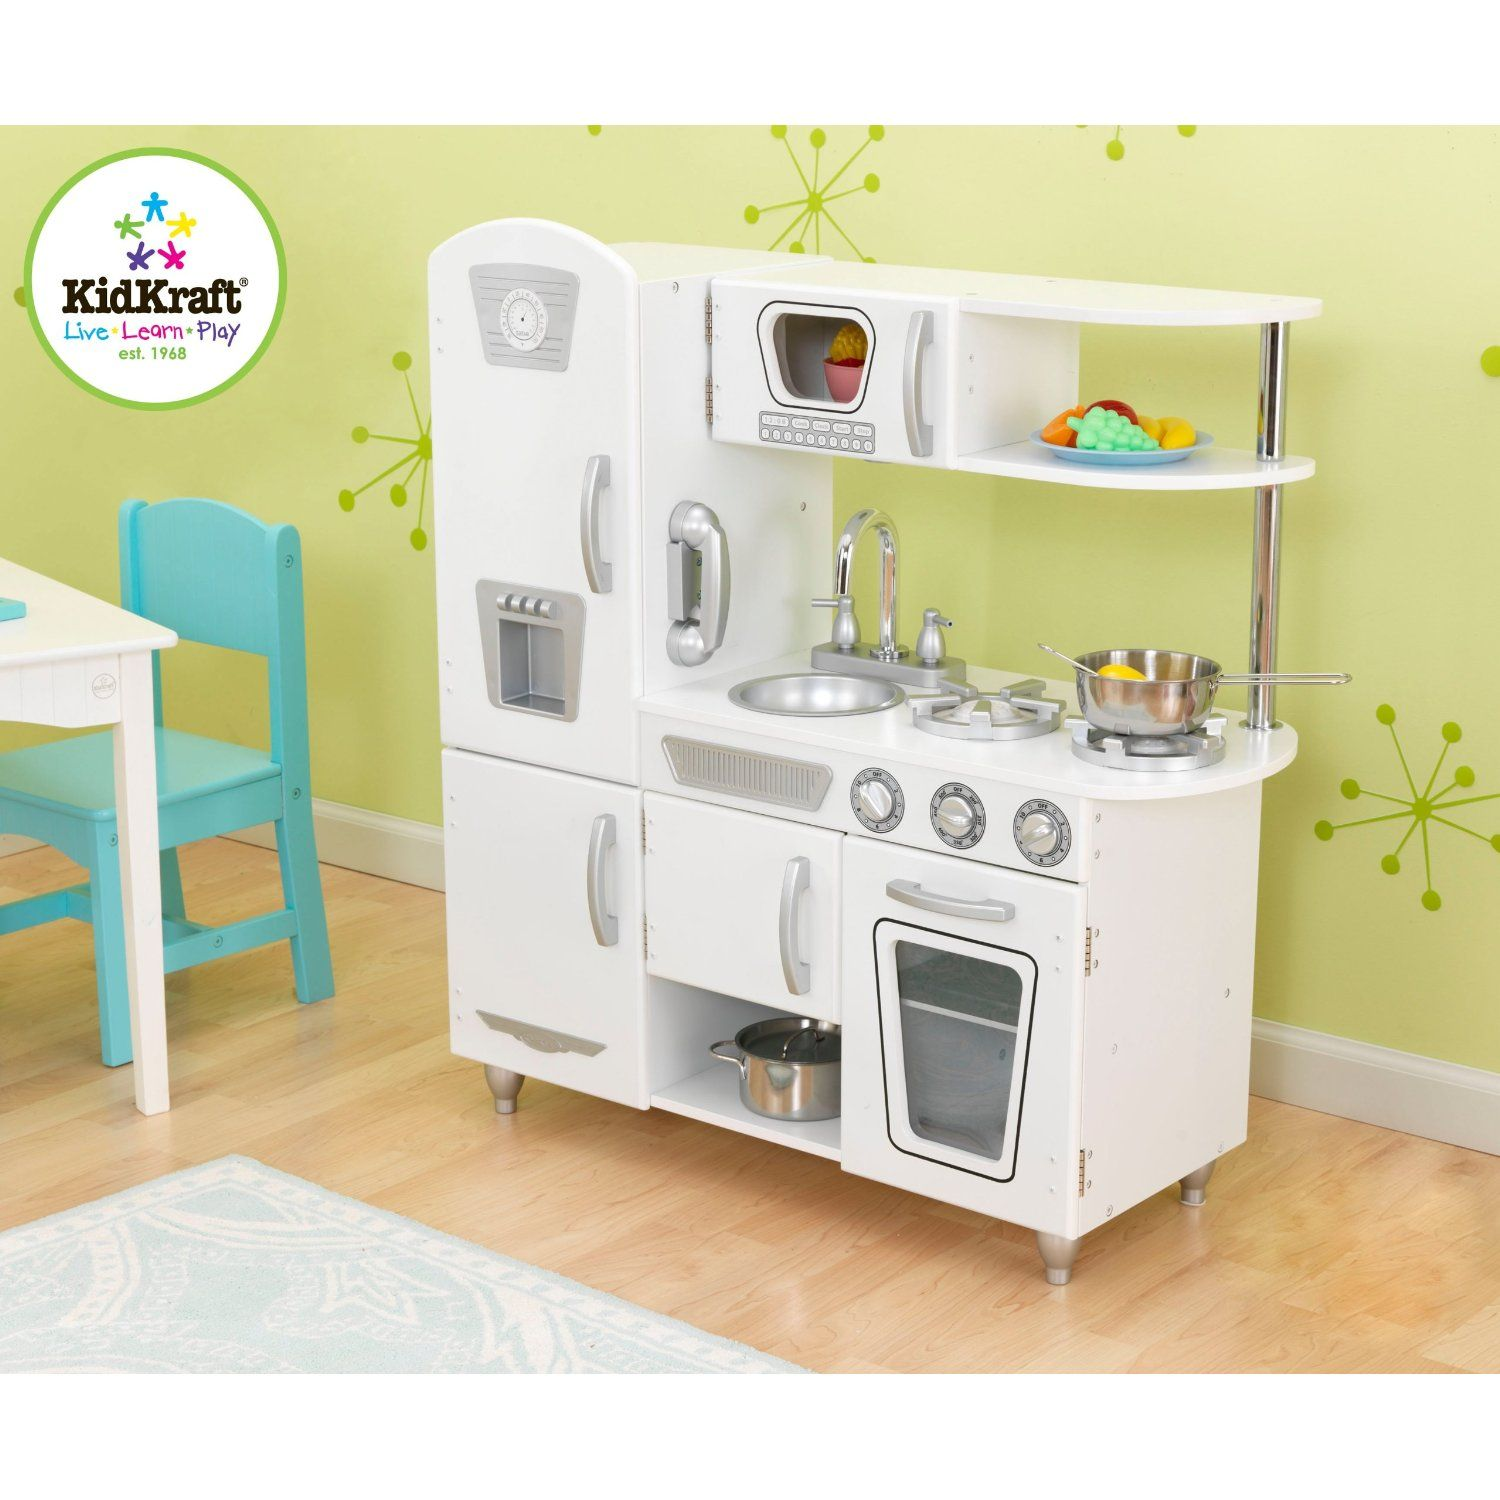 Awesome Vintage Style Kitchen Play Set For Your Kids. Children Love To  Learn And Have